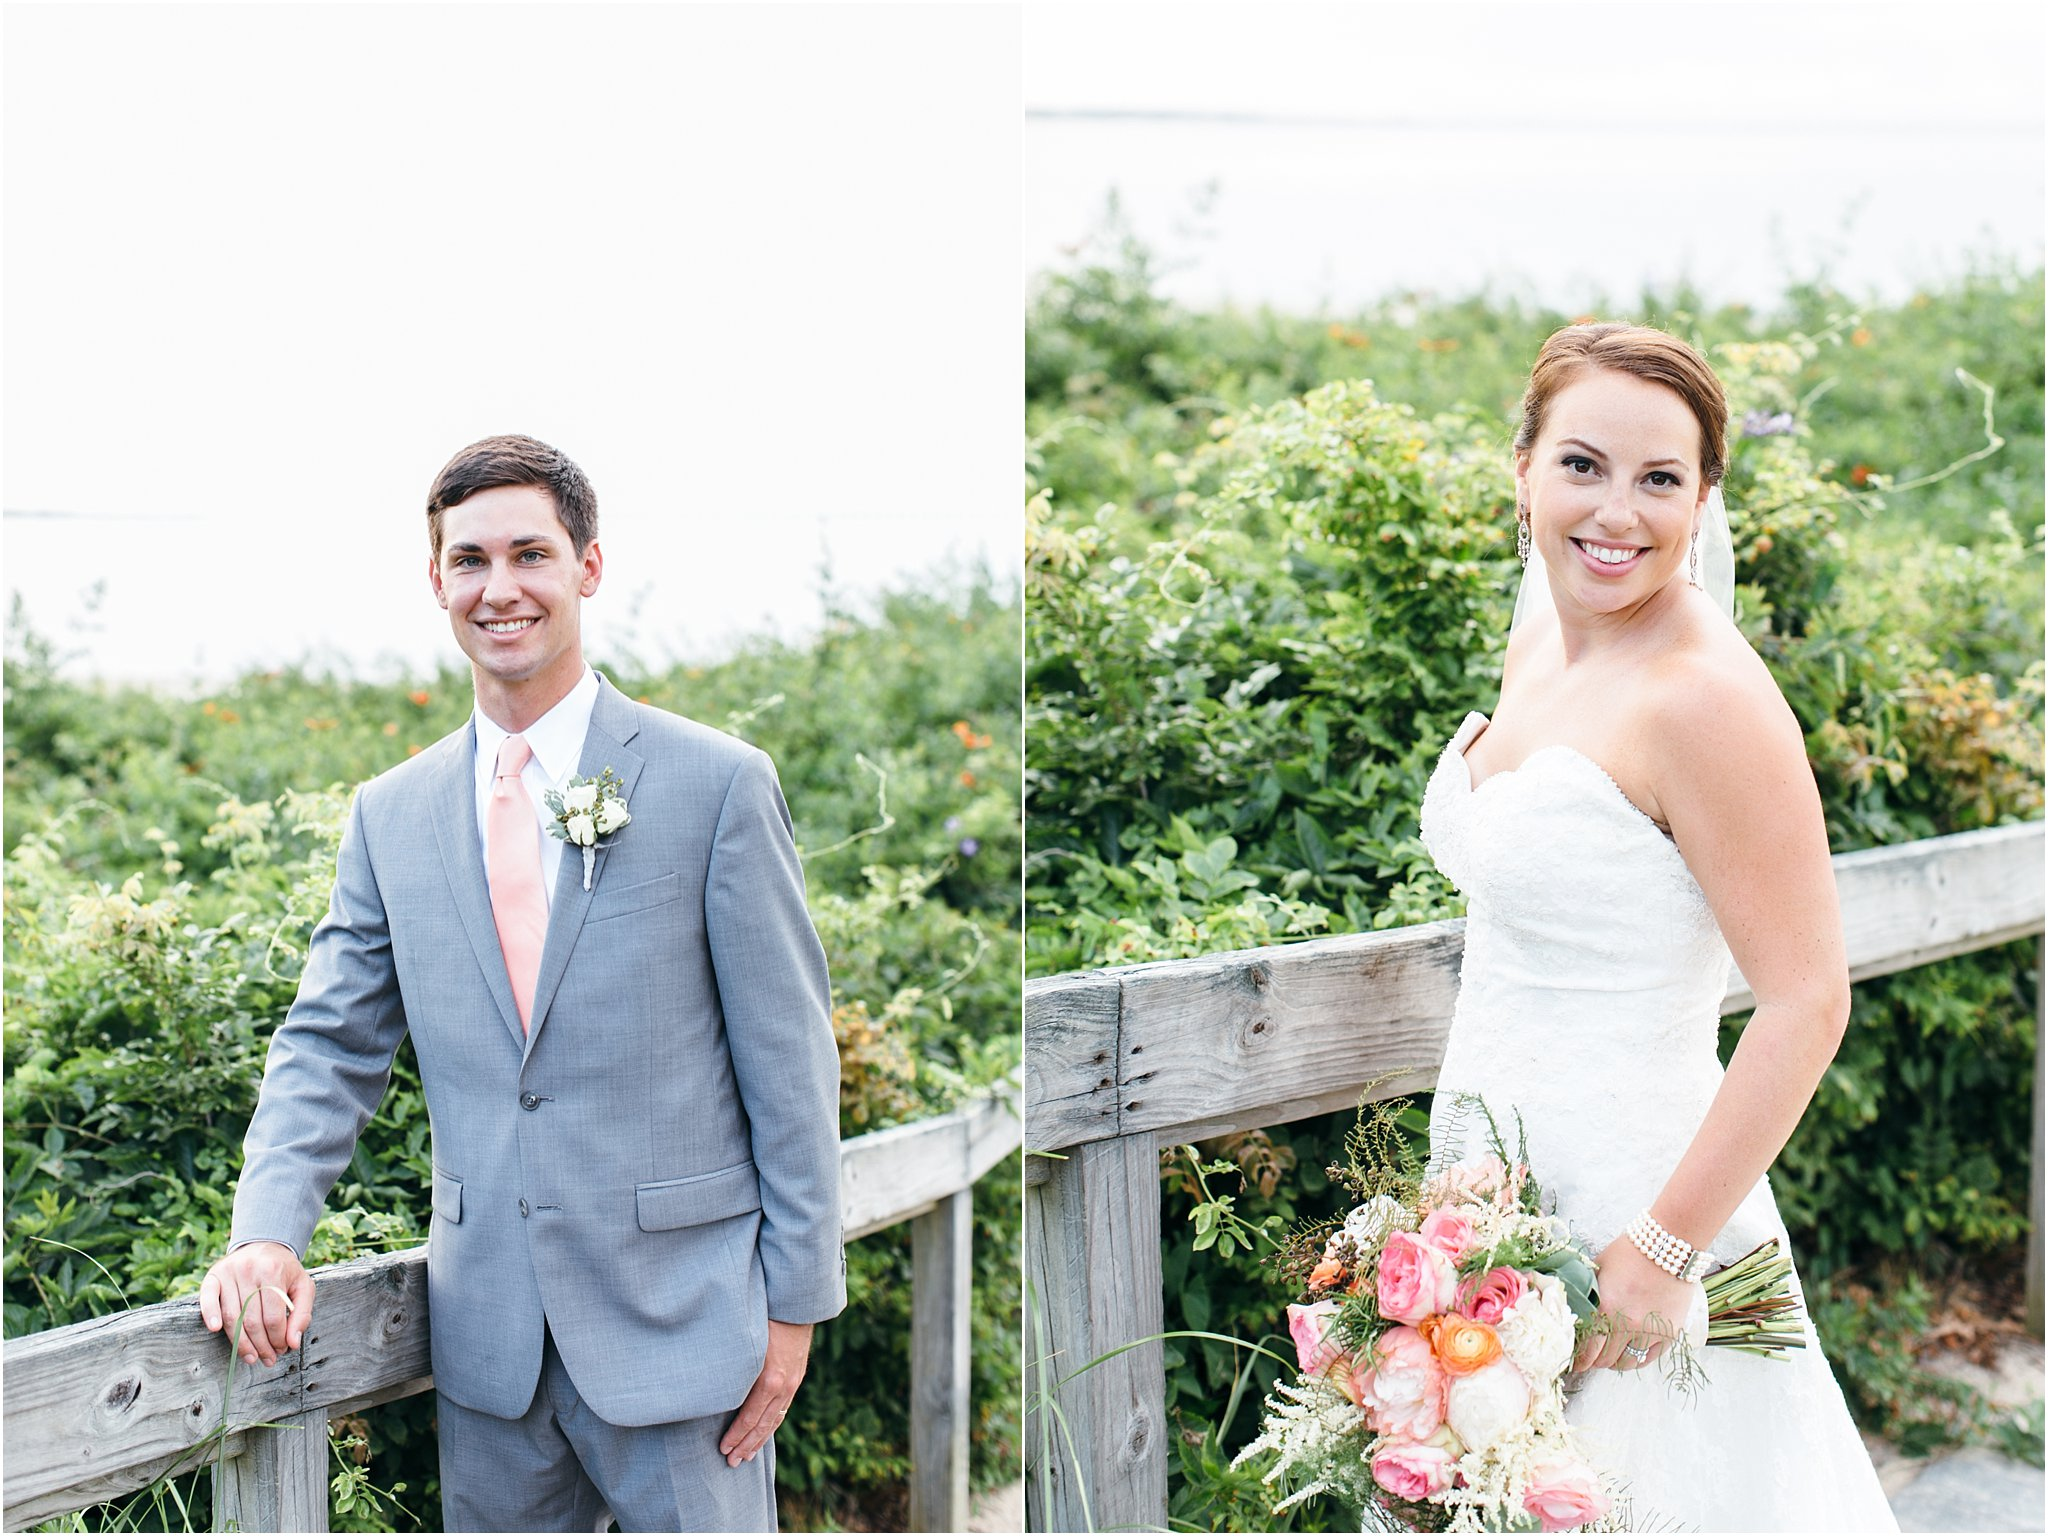 jessica_ryan_photography_wedding_photography_virginiabeach_virginia_candid_authentic_wedding_portraits_marina_shores_yacht_club_chesapeake_bay_1897